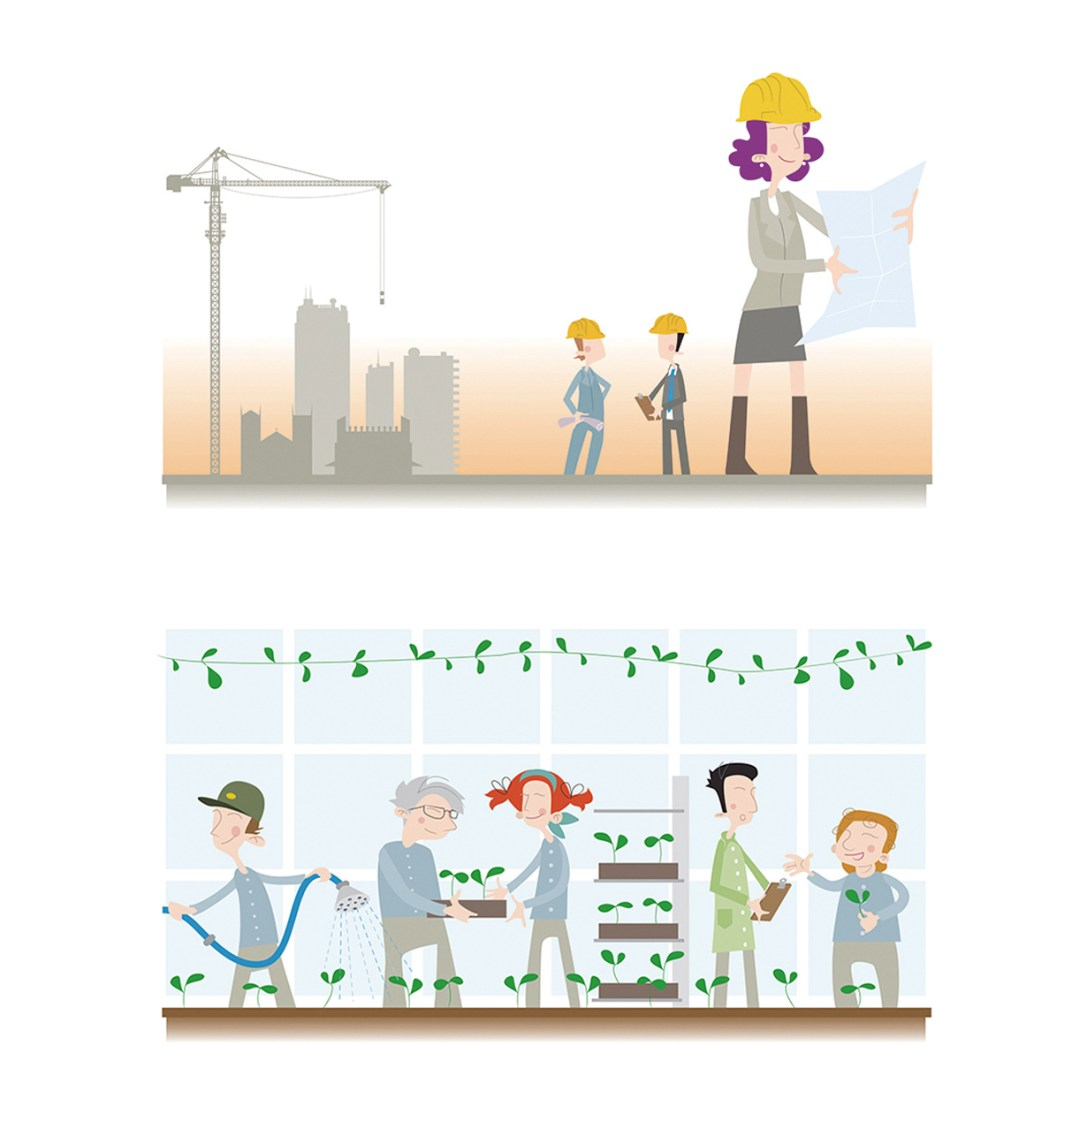 """Illustrations for """"Equality at work"""" project by Finnish Ministry of Employment and the Economy, 2014"""